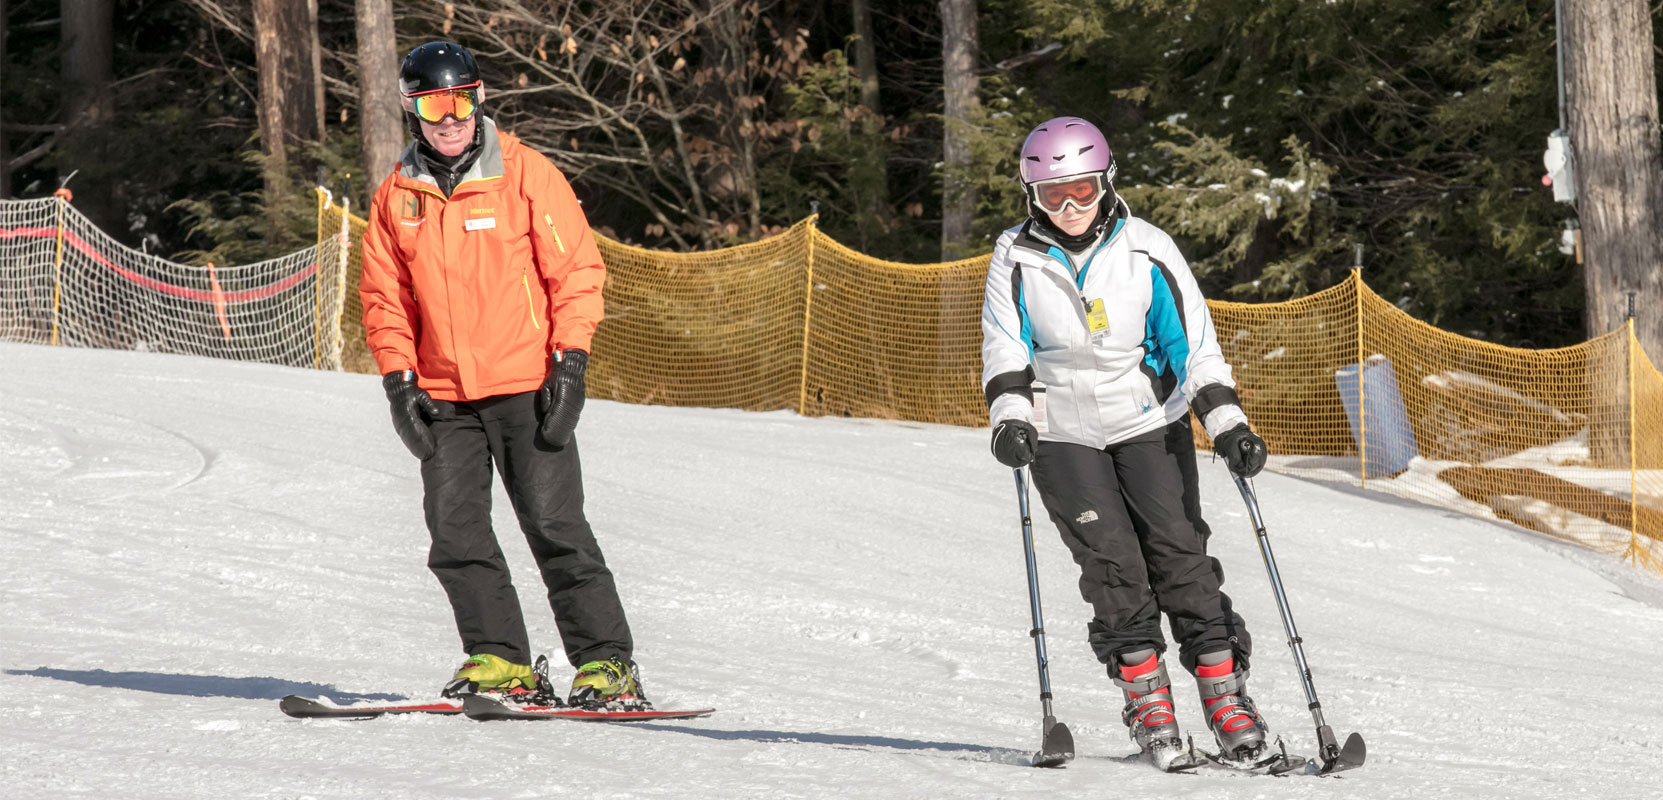 ski instructor and girl using adaptive ski equipment going down the slopes